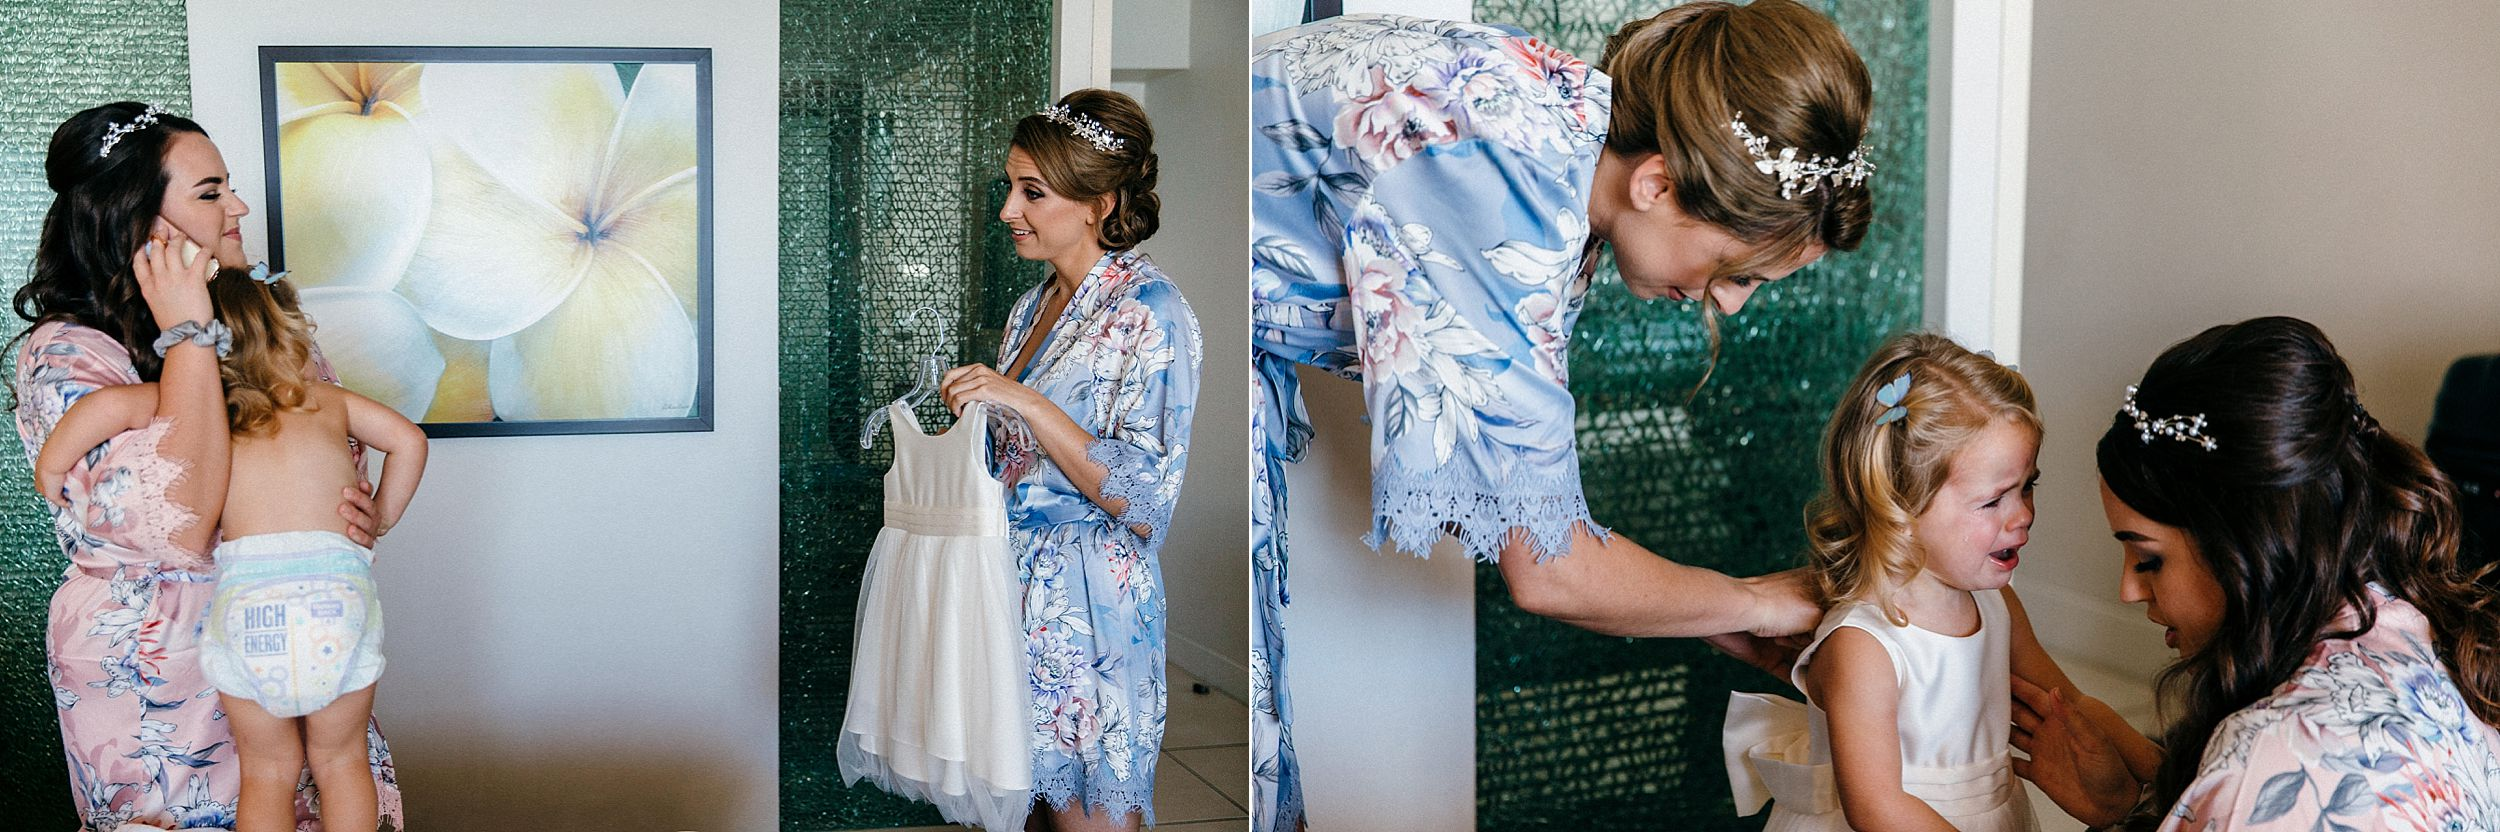 Getting Ready Images from a Honolulu Wedding